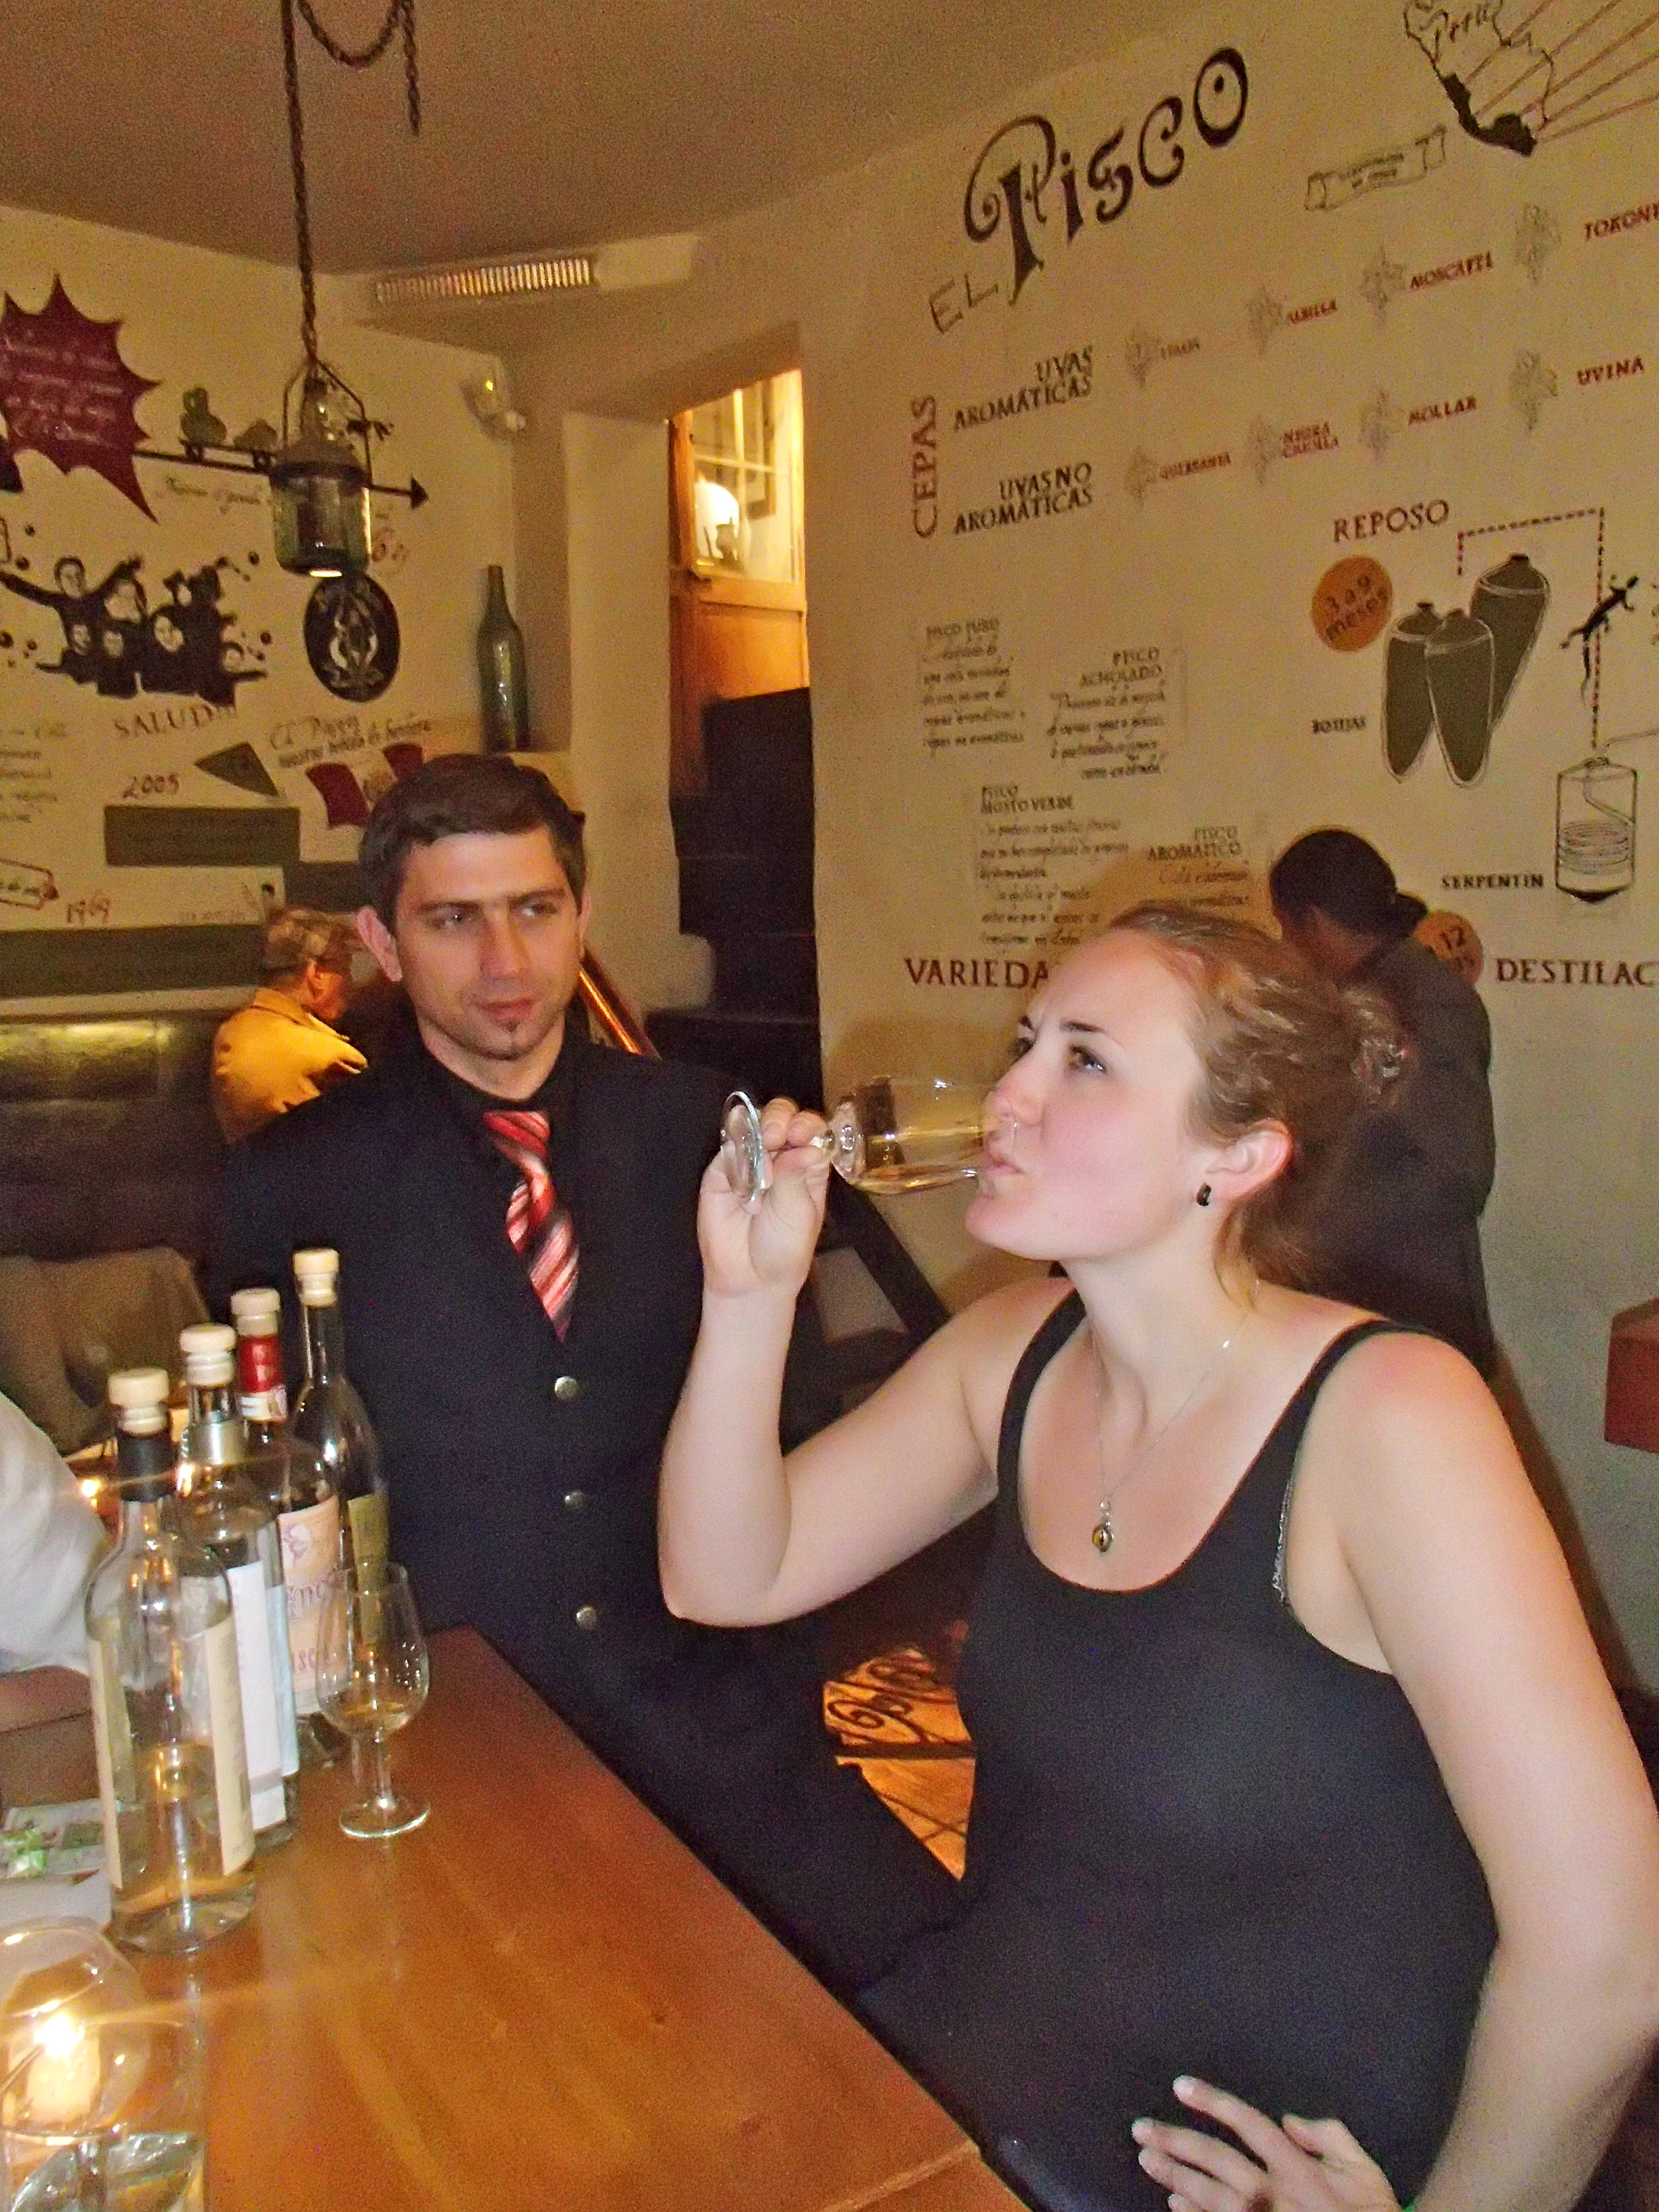 what is Pisco? best places to go in cusco peru